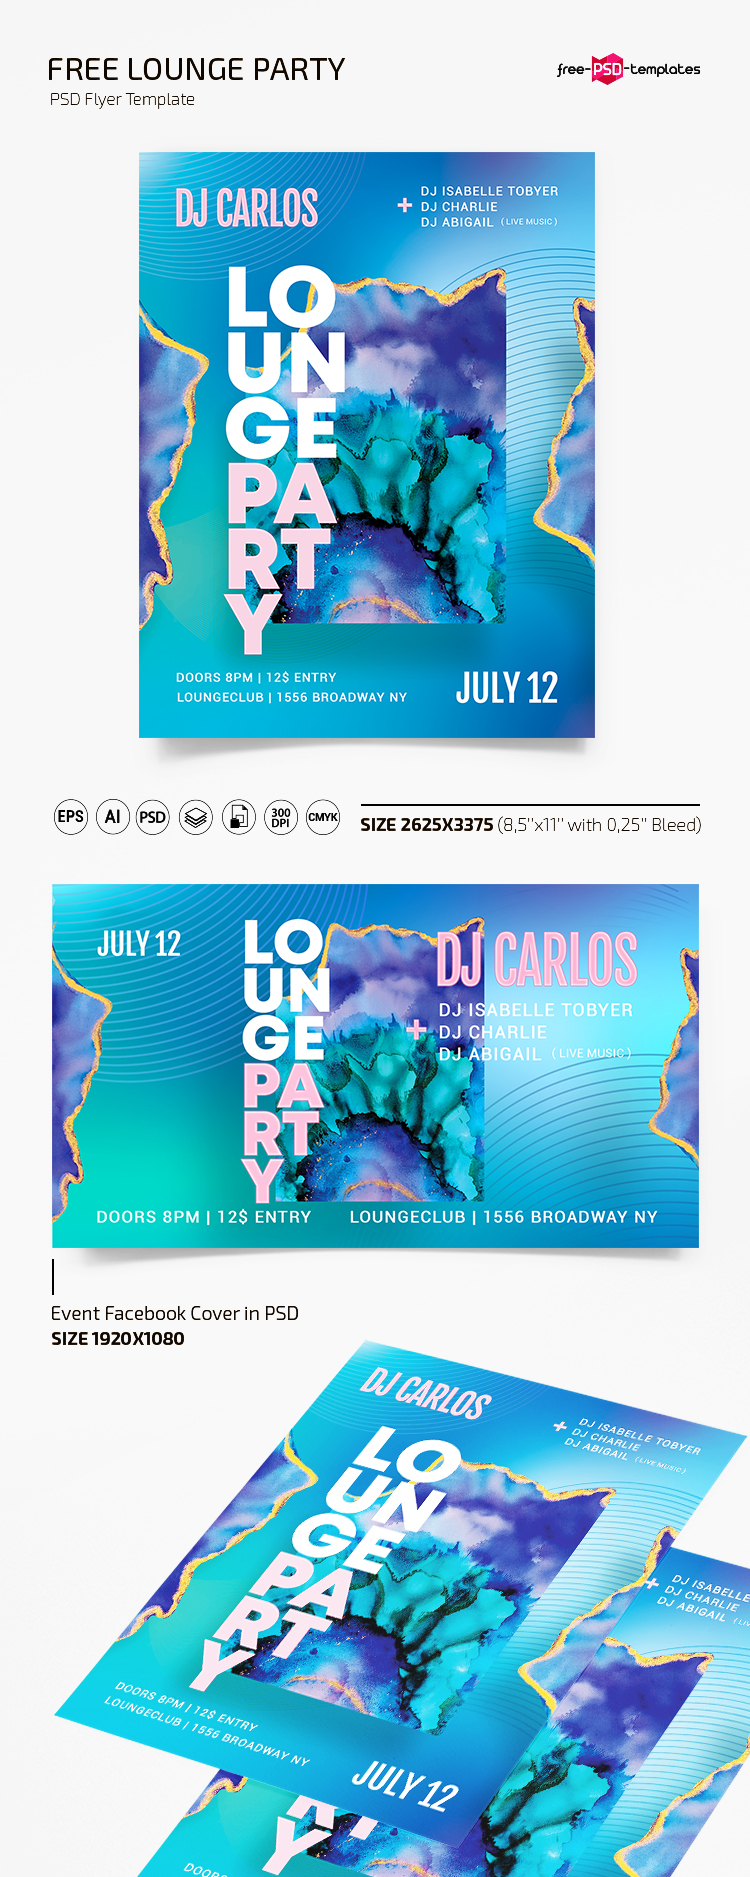 Free Lounge Party Flyer Template In Psd Ai Free Psd Templates